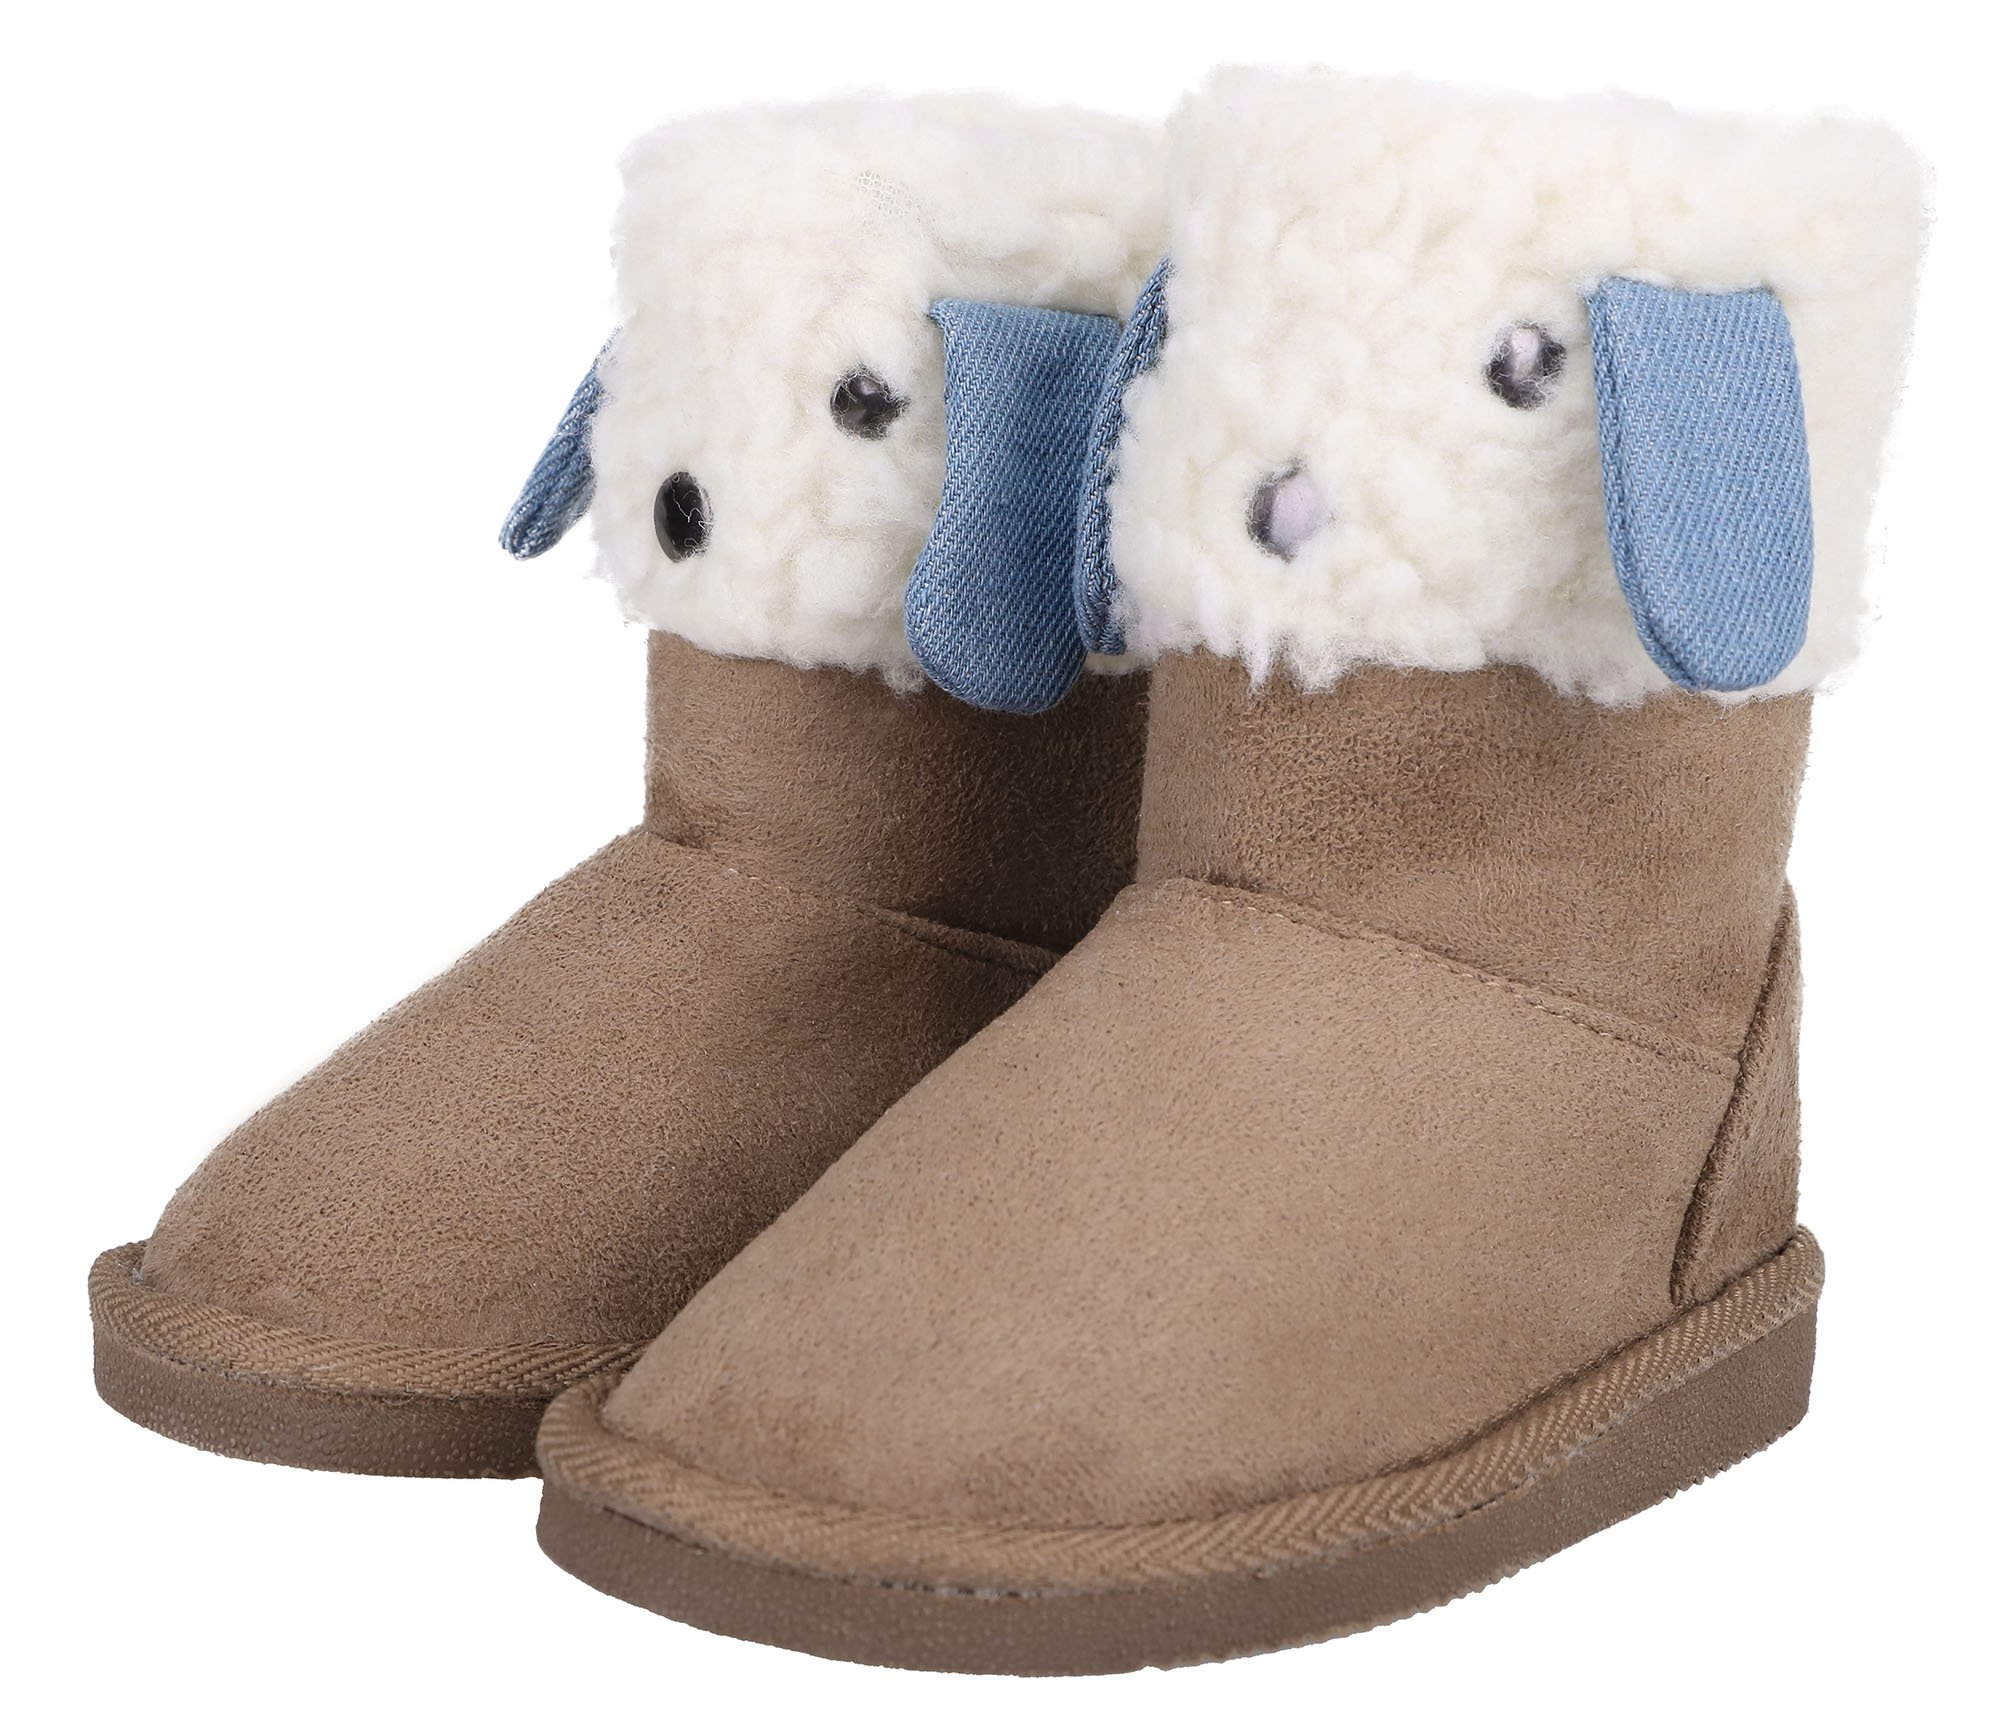 Toddlers Winter Sherpa Lined Boots Boys/Girls Animal Snow Shoes,Cream Size 11